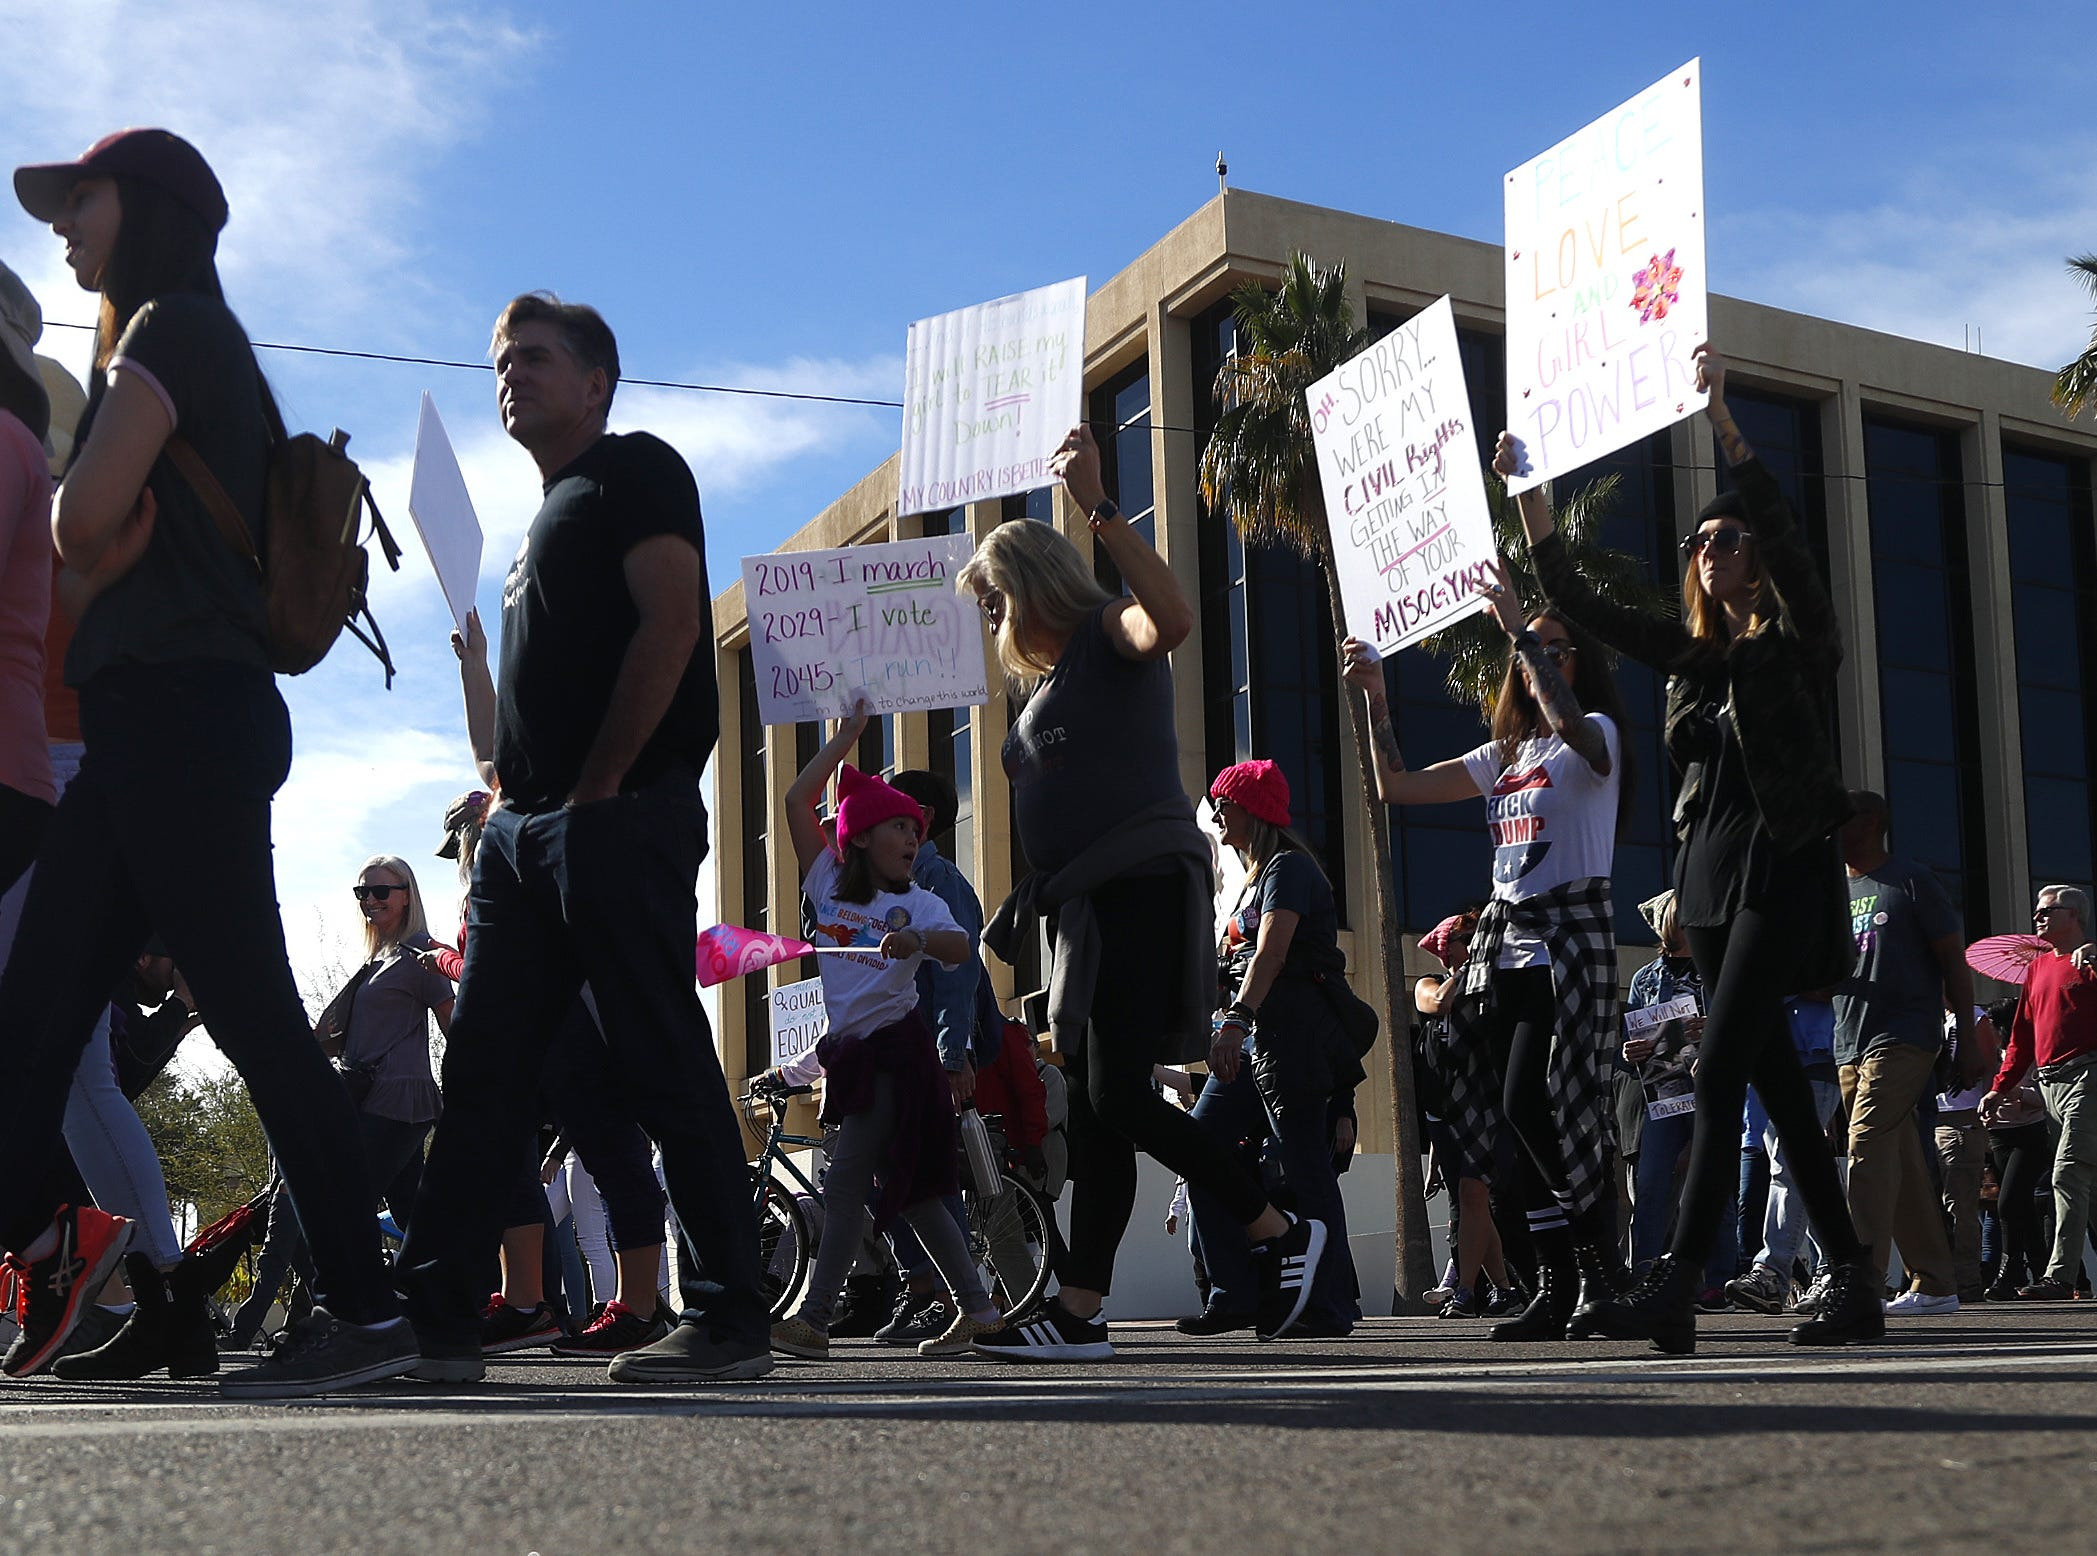 People make their way down Jefferson street during the Women's March outside the Arizona Capitol in Phoenix, Jan. 19, 2019.